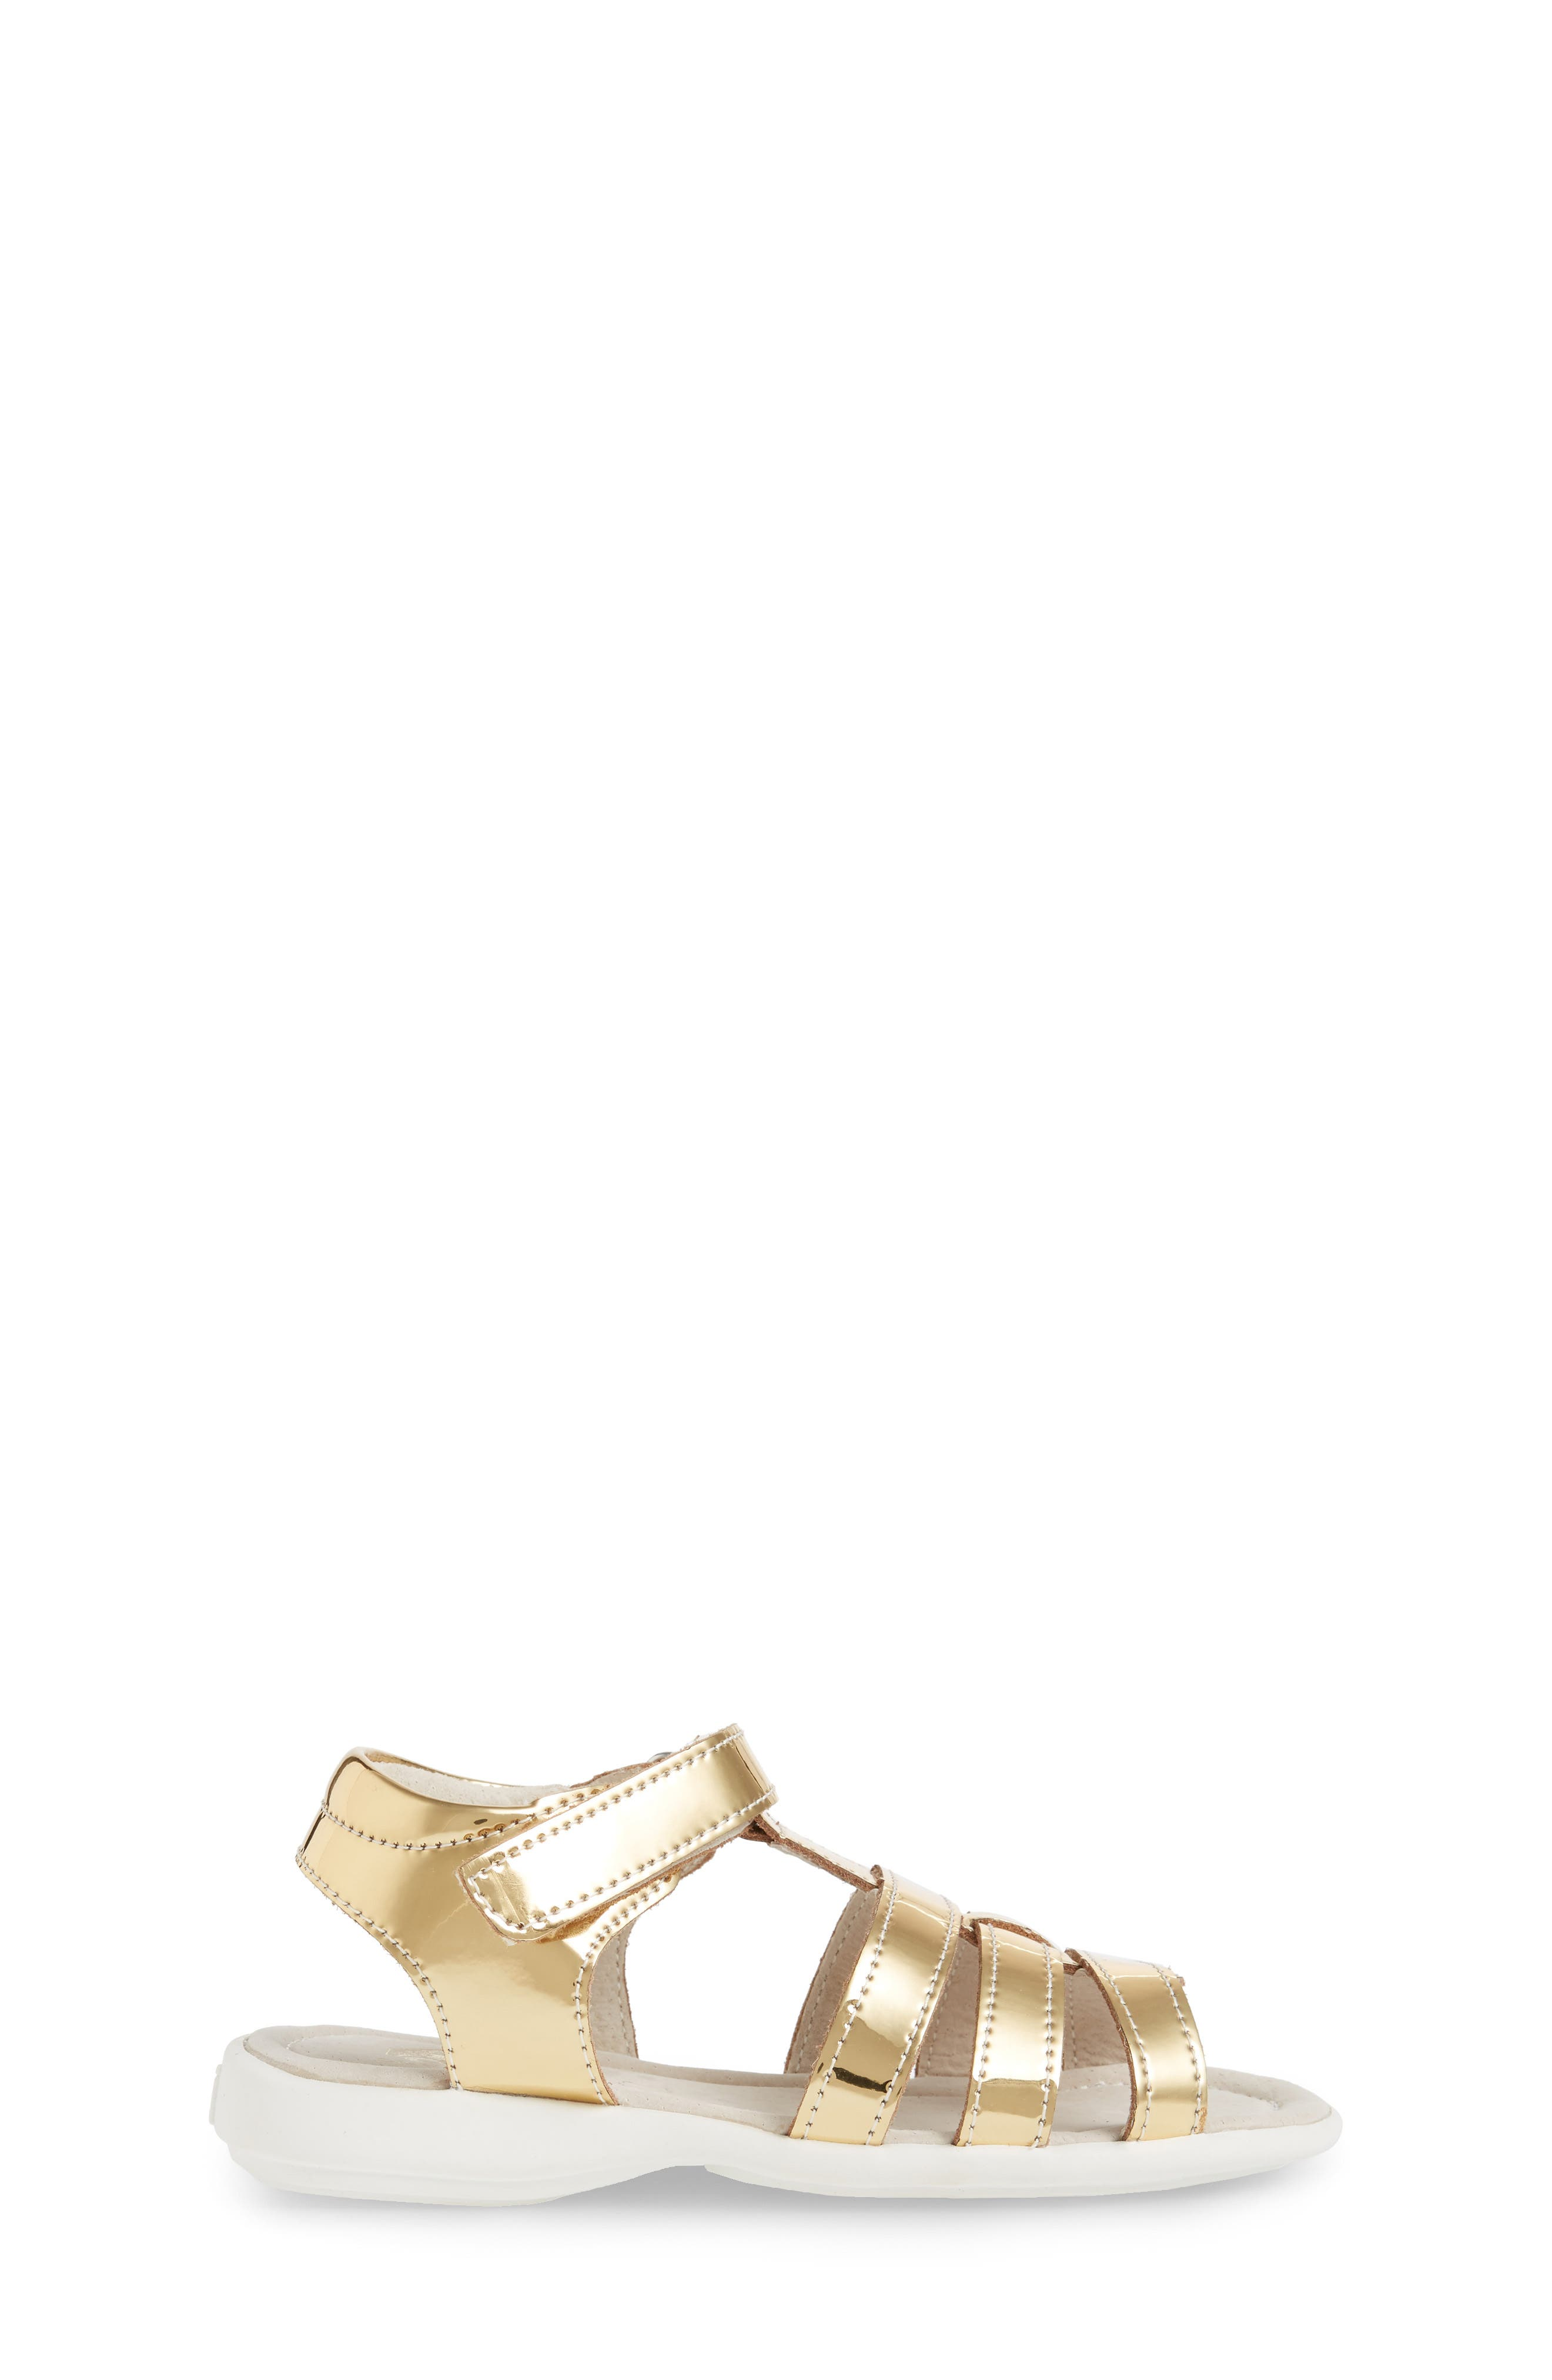 Fe Metallic Fisherman Sandal,                             Alternate thumbnail 3, color,                             Gold